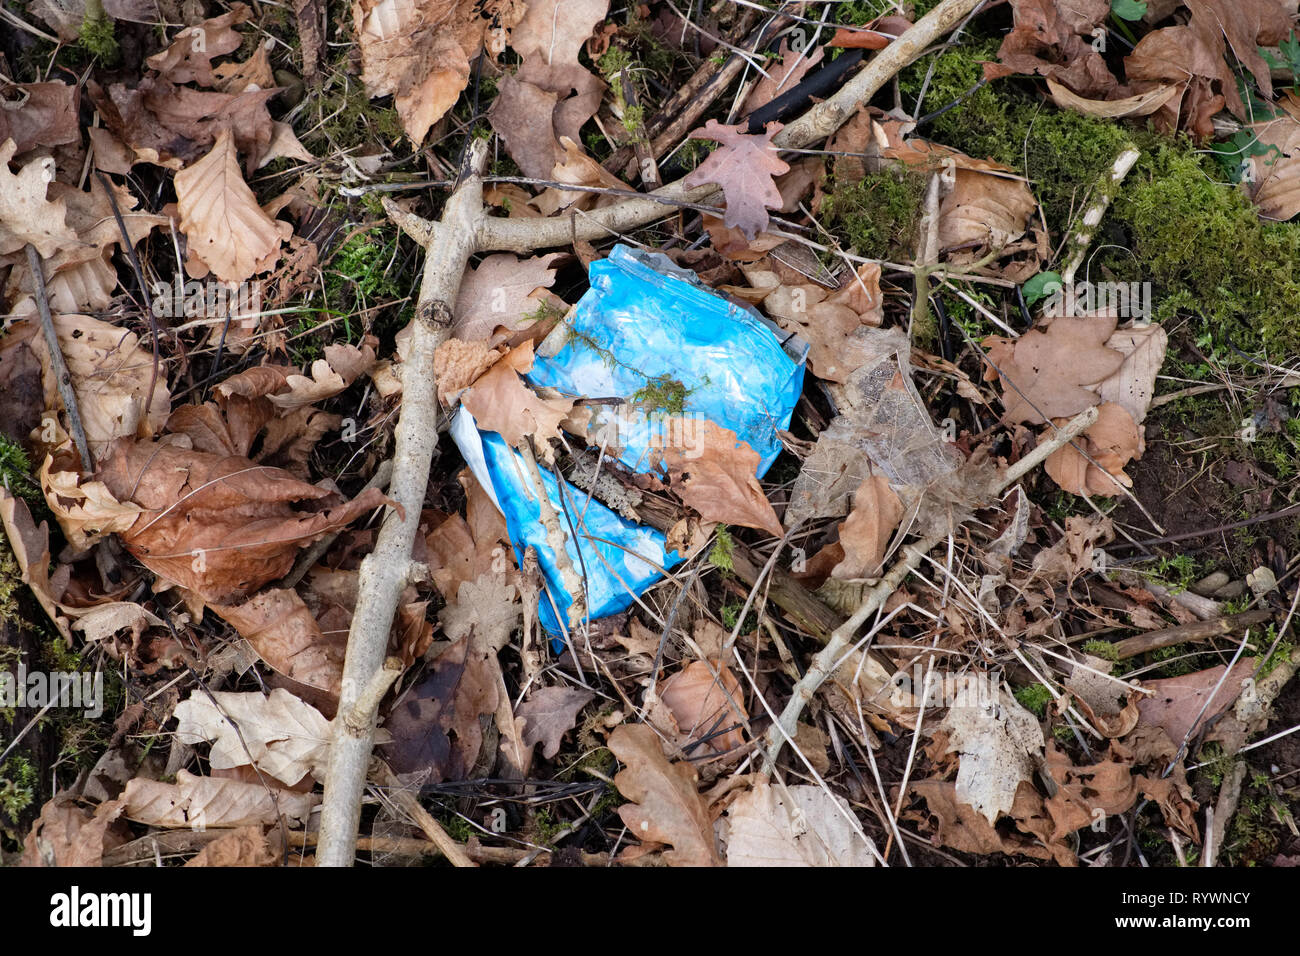 Environmental image of Waste with a Plastic non-biodegradable Plastic wrapper lying amongst leaves on the forrest floor in Scotland. - Stock Image